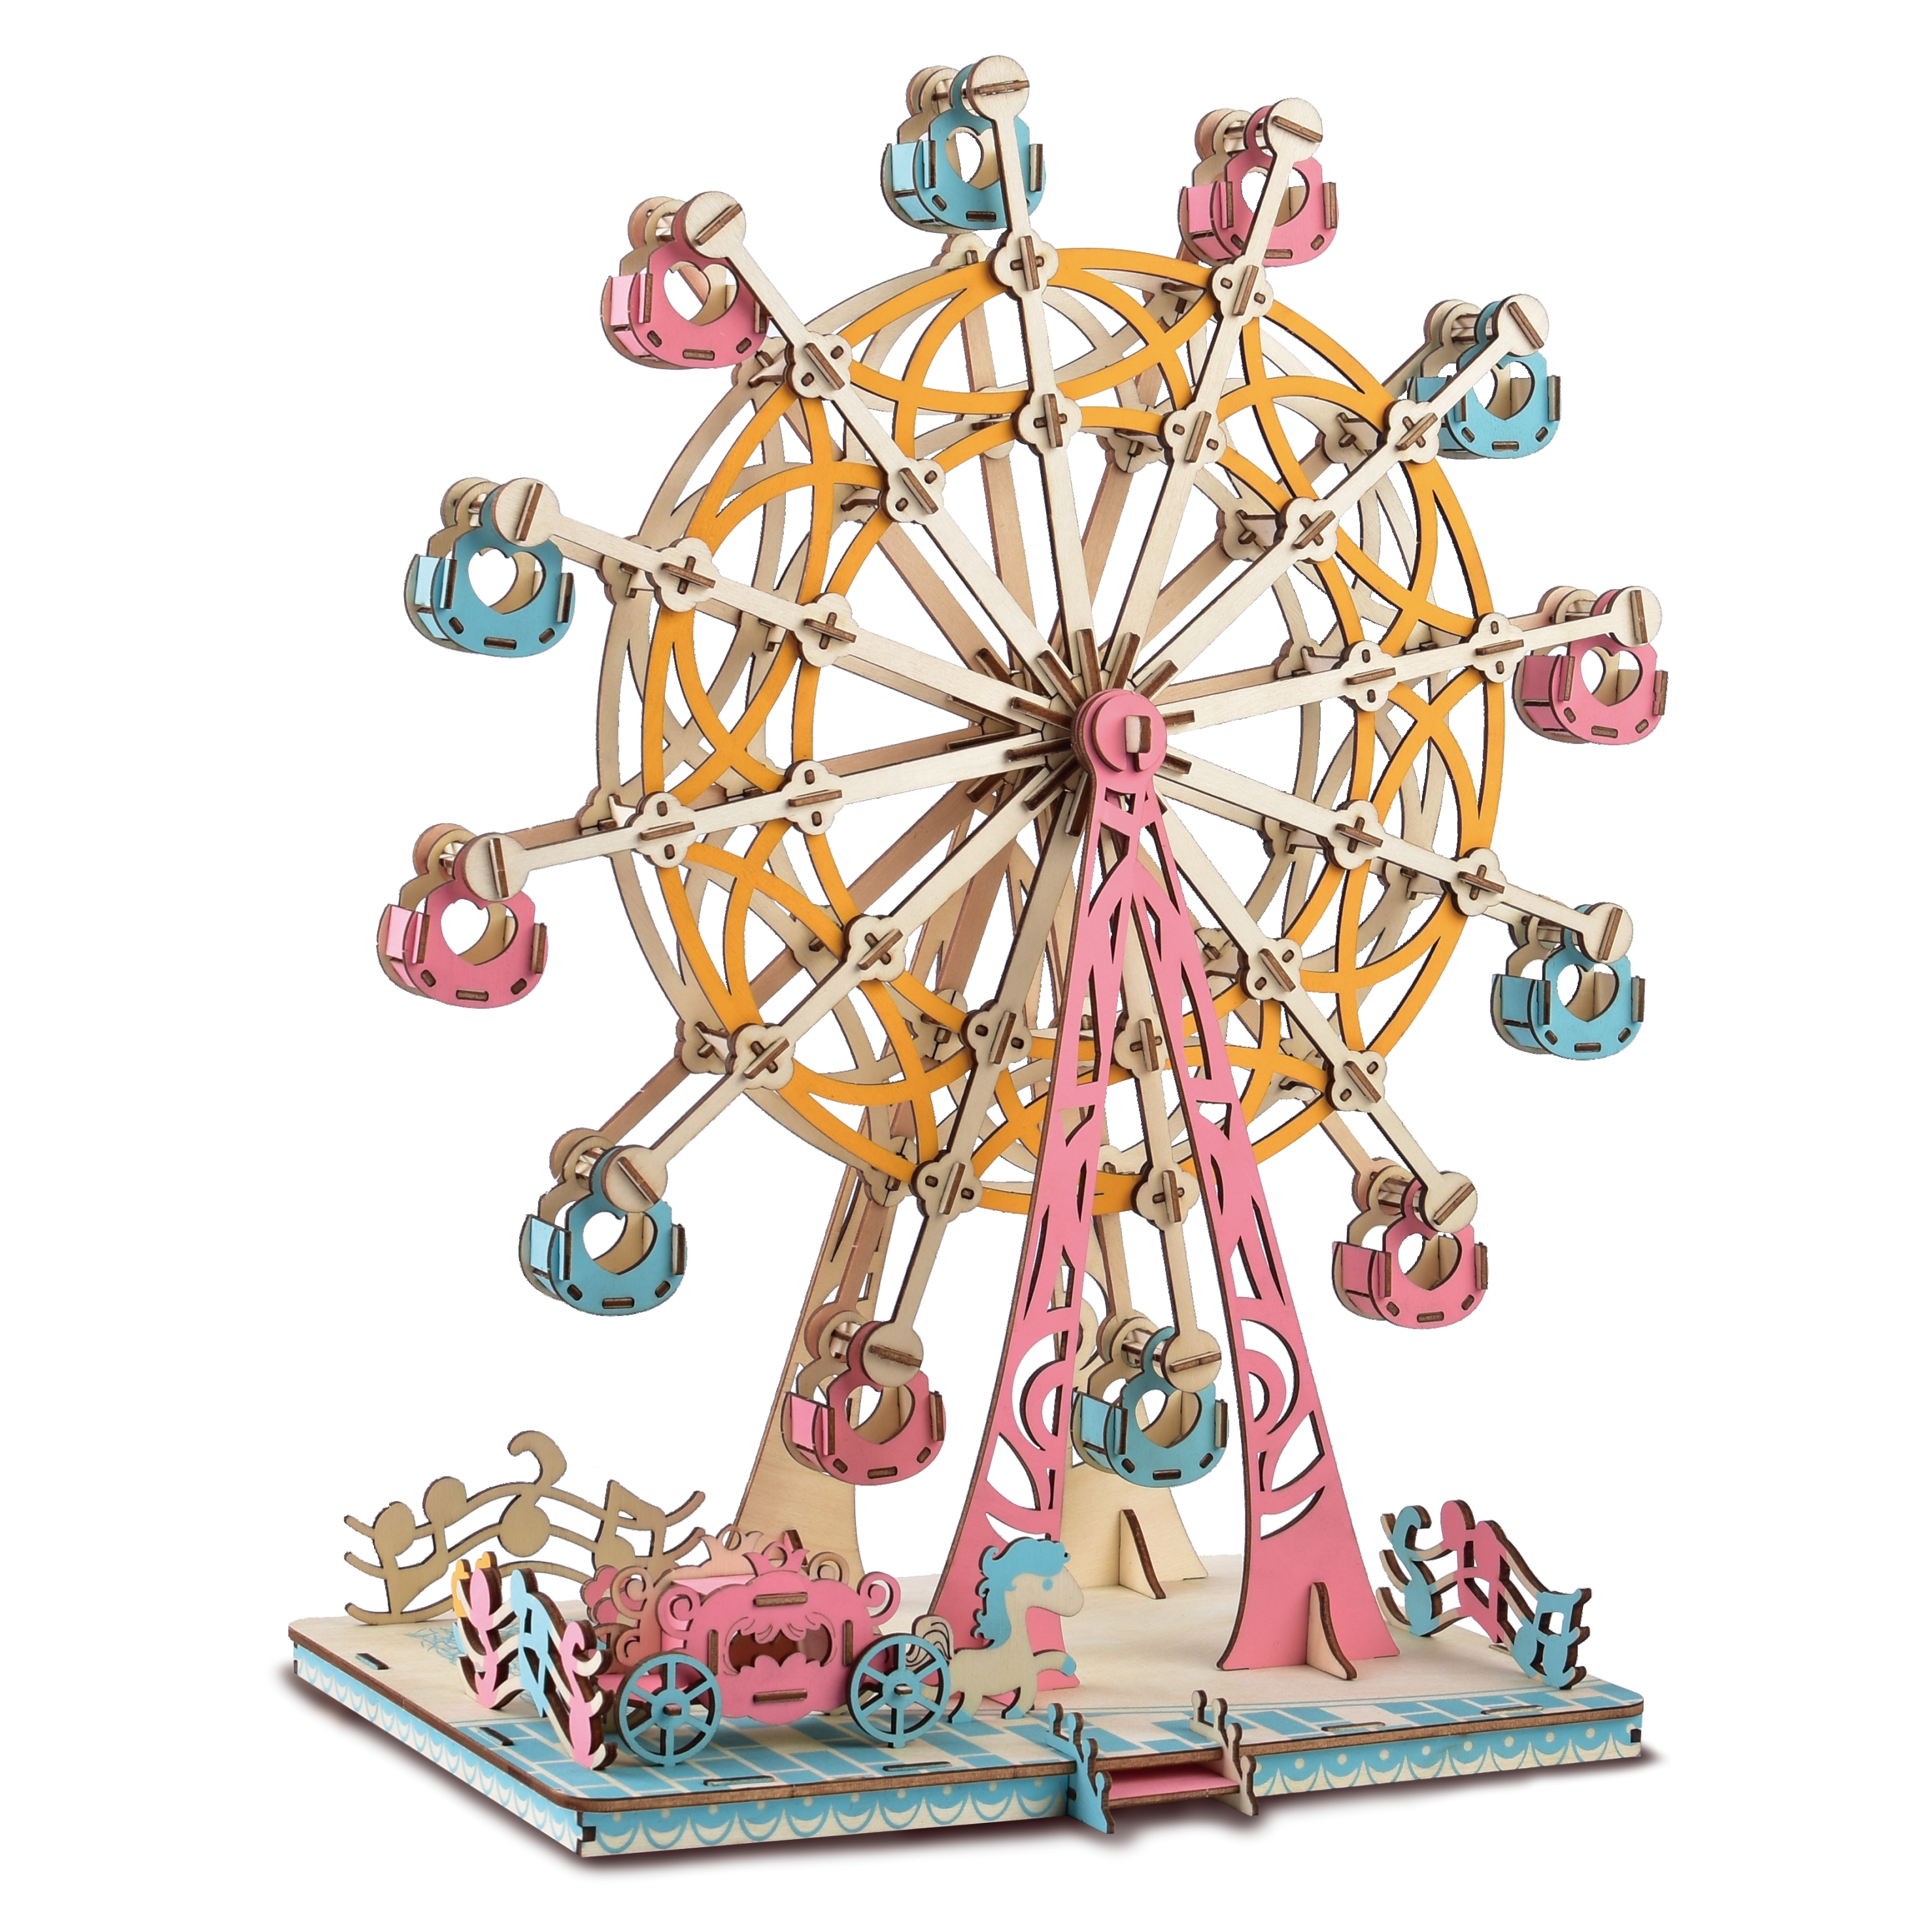 NEW DIY 3D Wooden Ferris Wheel Puzzle Game Gift For Children Kid Friend Nice Decor Model Building Kits Popular Toy